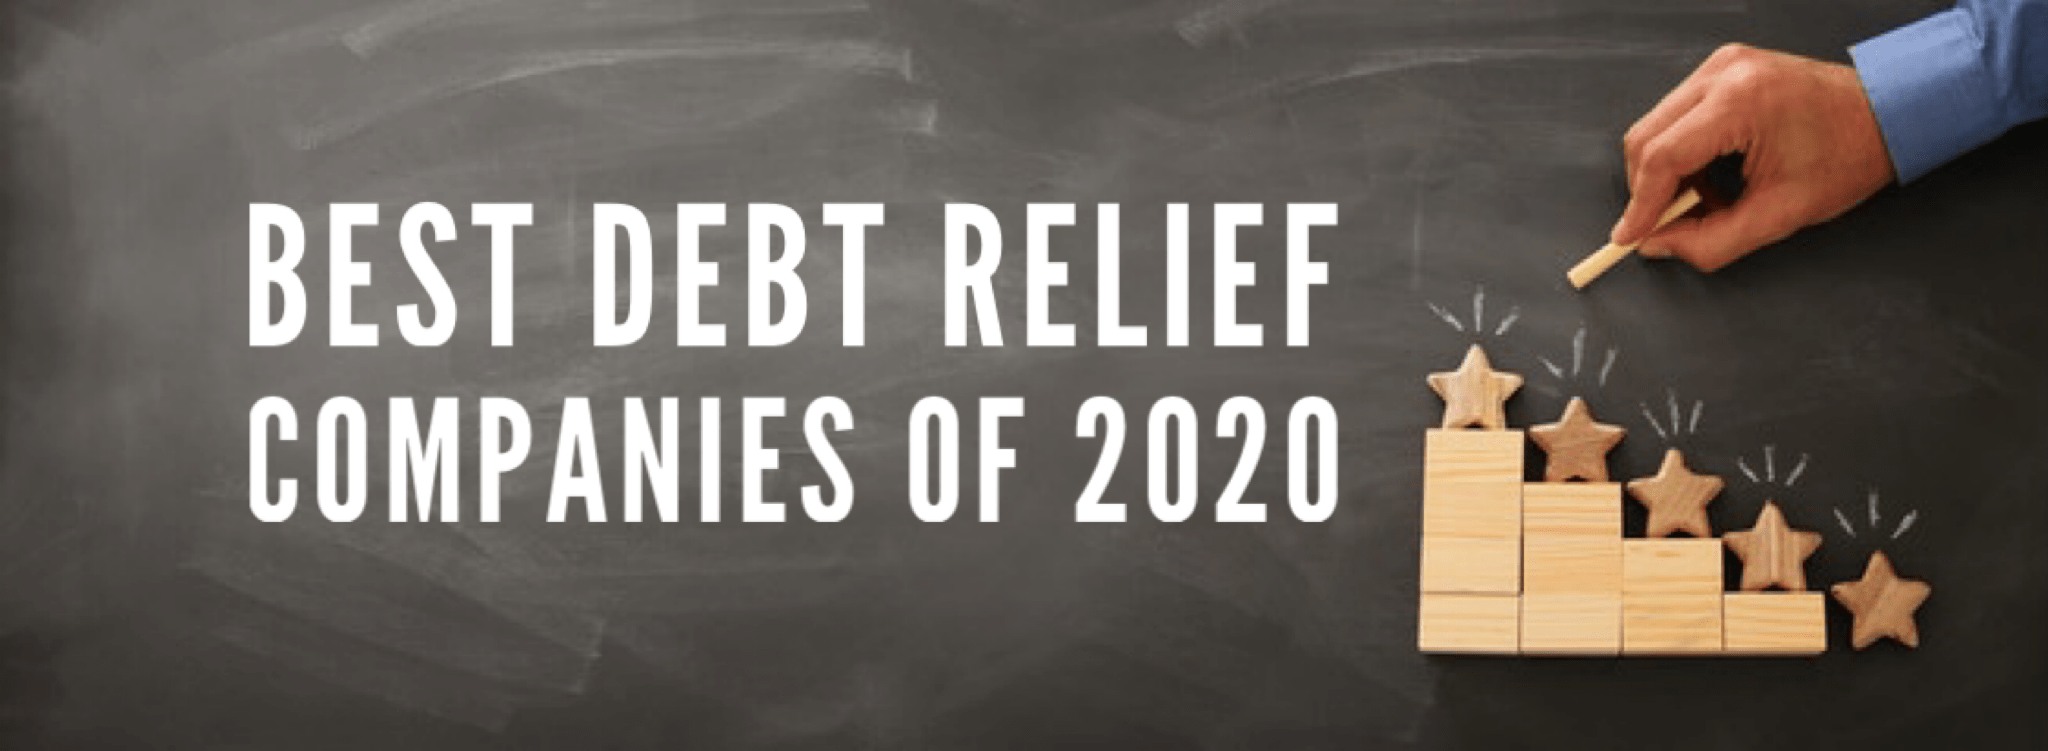 The Best Debt Relief Companies In The US Of 2020